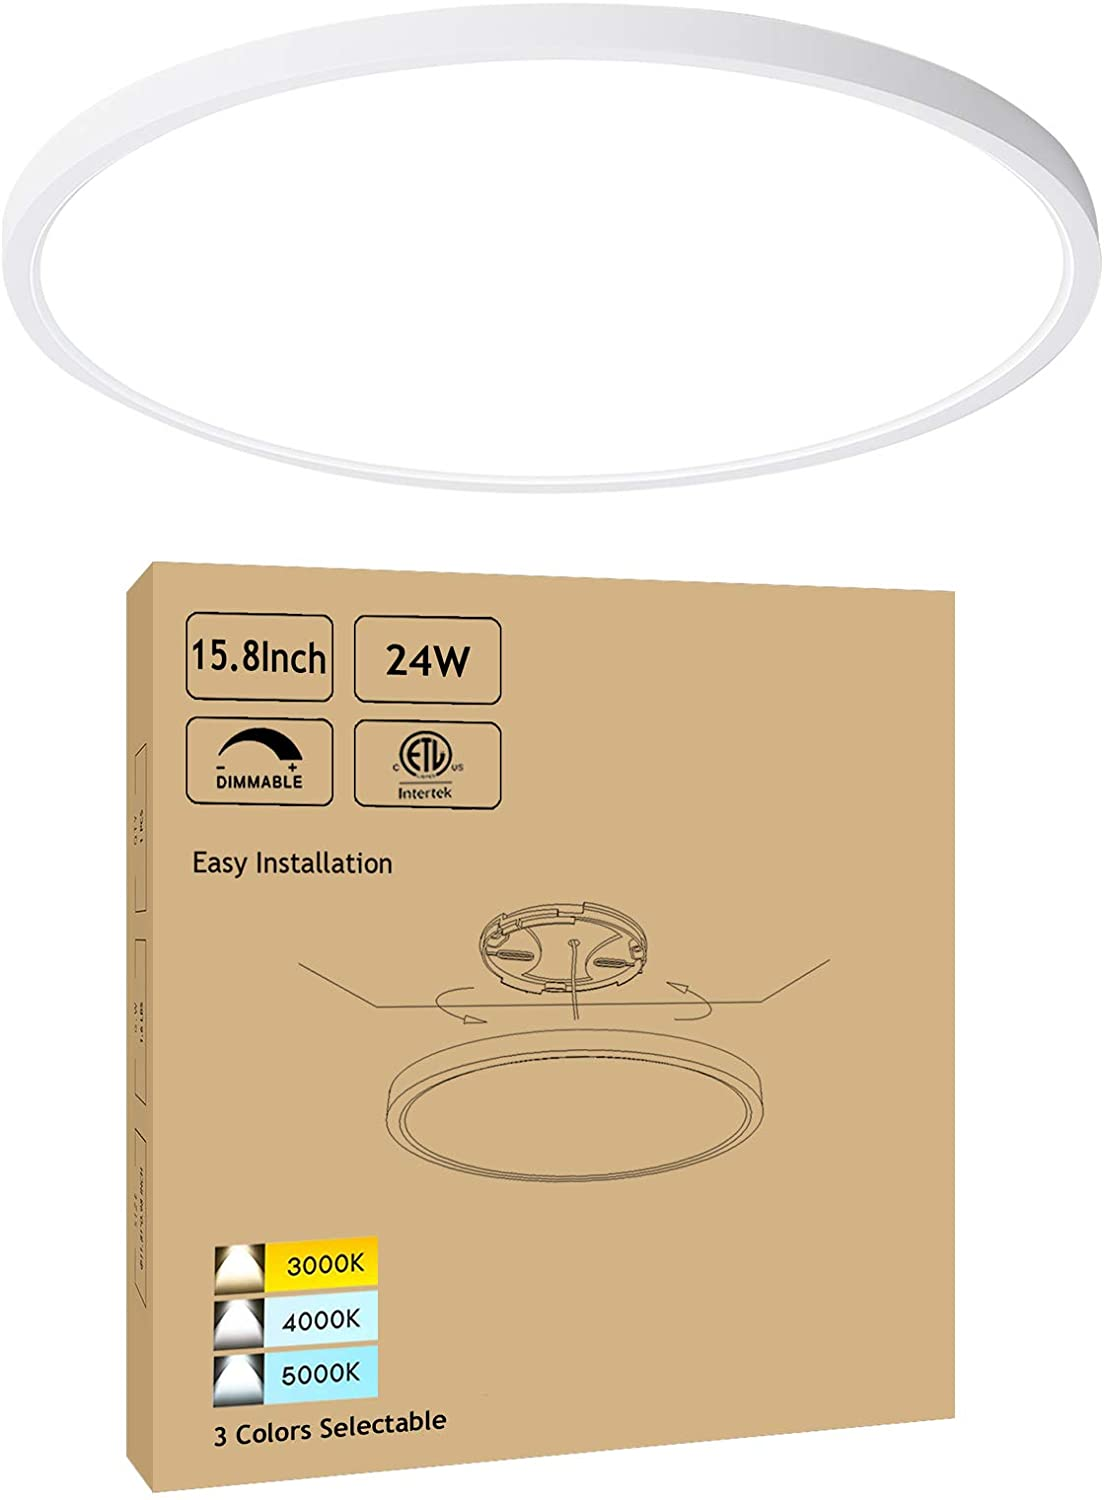 15.8 Inch Dimmable LED Ceiling Light Flush Mount - Low Profile 24W 3000K-4000K-5000K 3 Color Temperature Selectable - White Ultra Thin Modern Surface Mount Ceiling Lamp for Residential